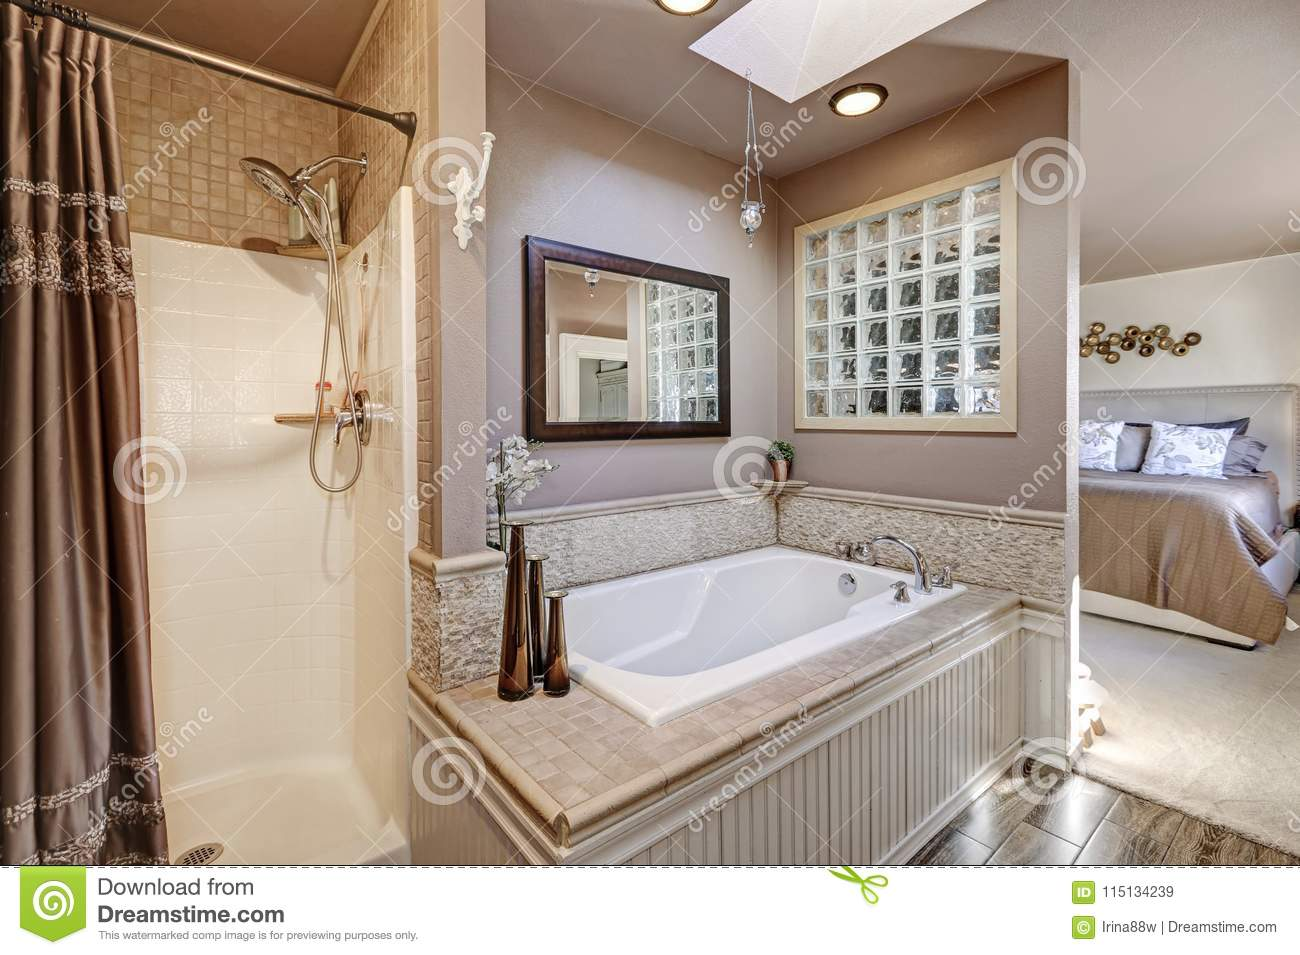 Chic Bathroom With Luxury Drop-in Tub Stock Image - Image of home ...